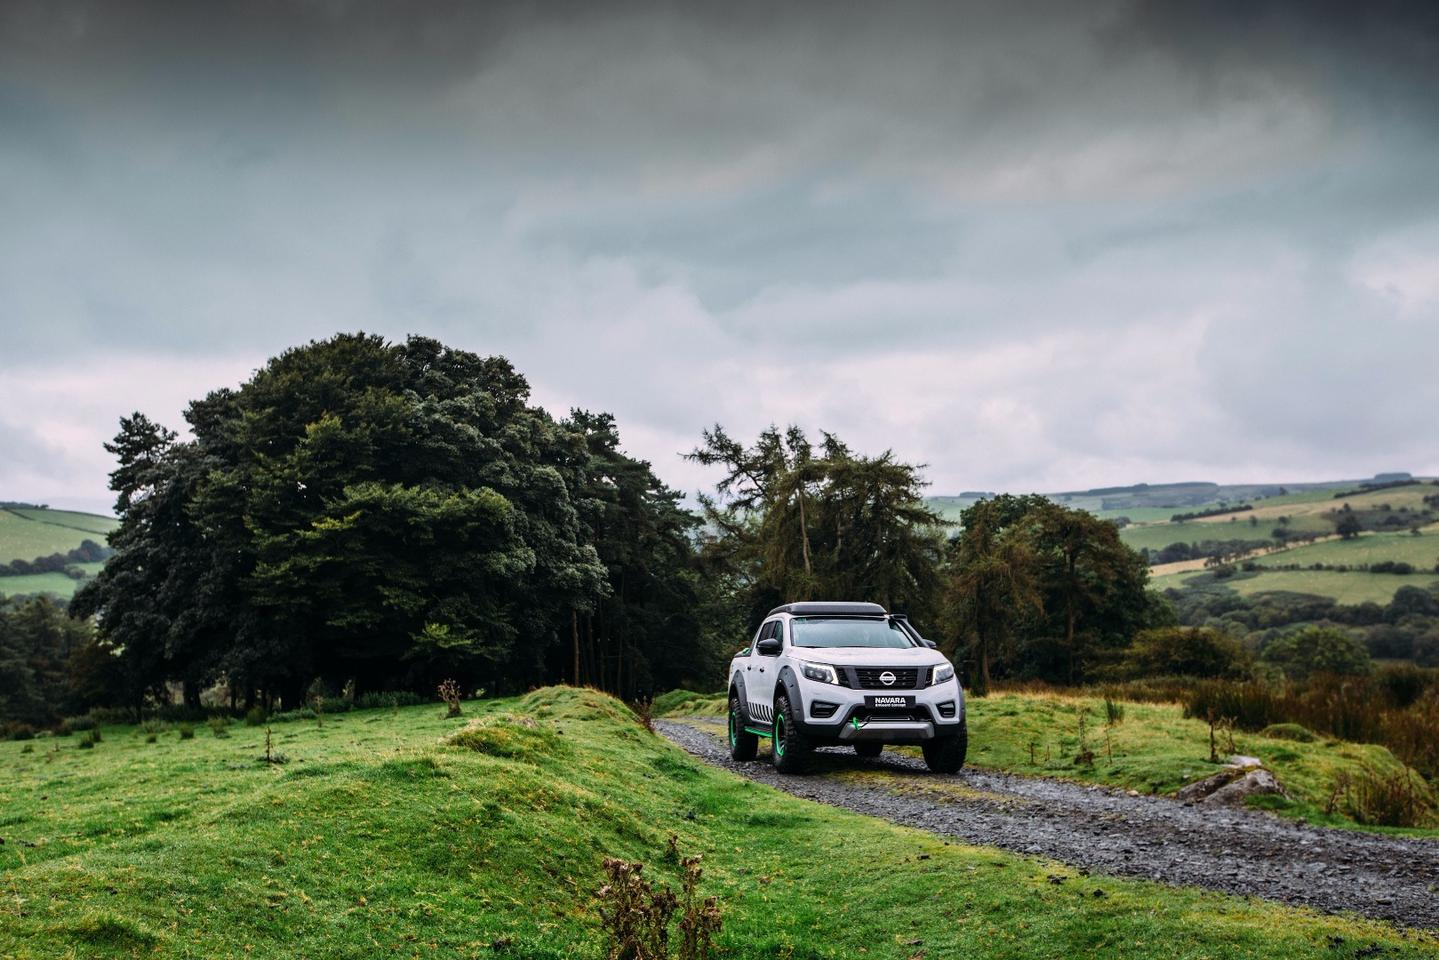 The Navara EnGuard Concept is designed with search and rescue in remote areas in mind